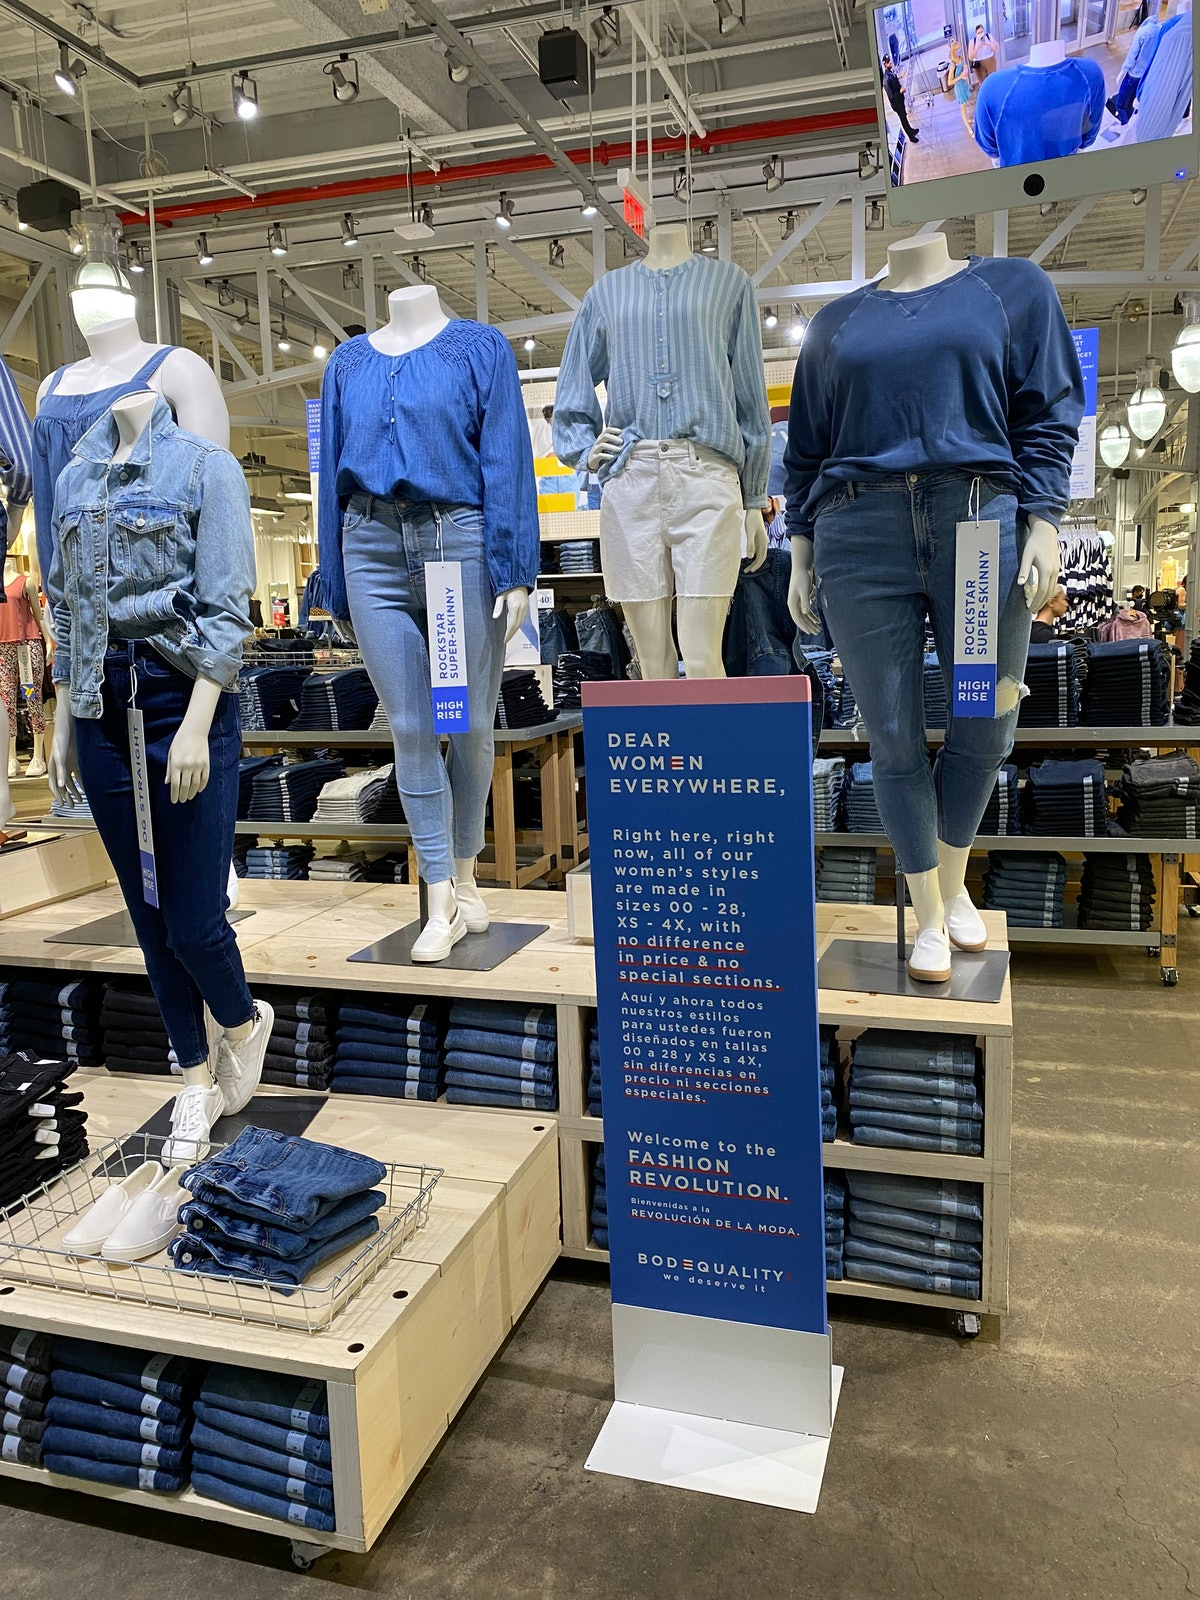 New mannequins in extended sizes are featured in Old Navy stores as part of its BODEQUALITY initiati...